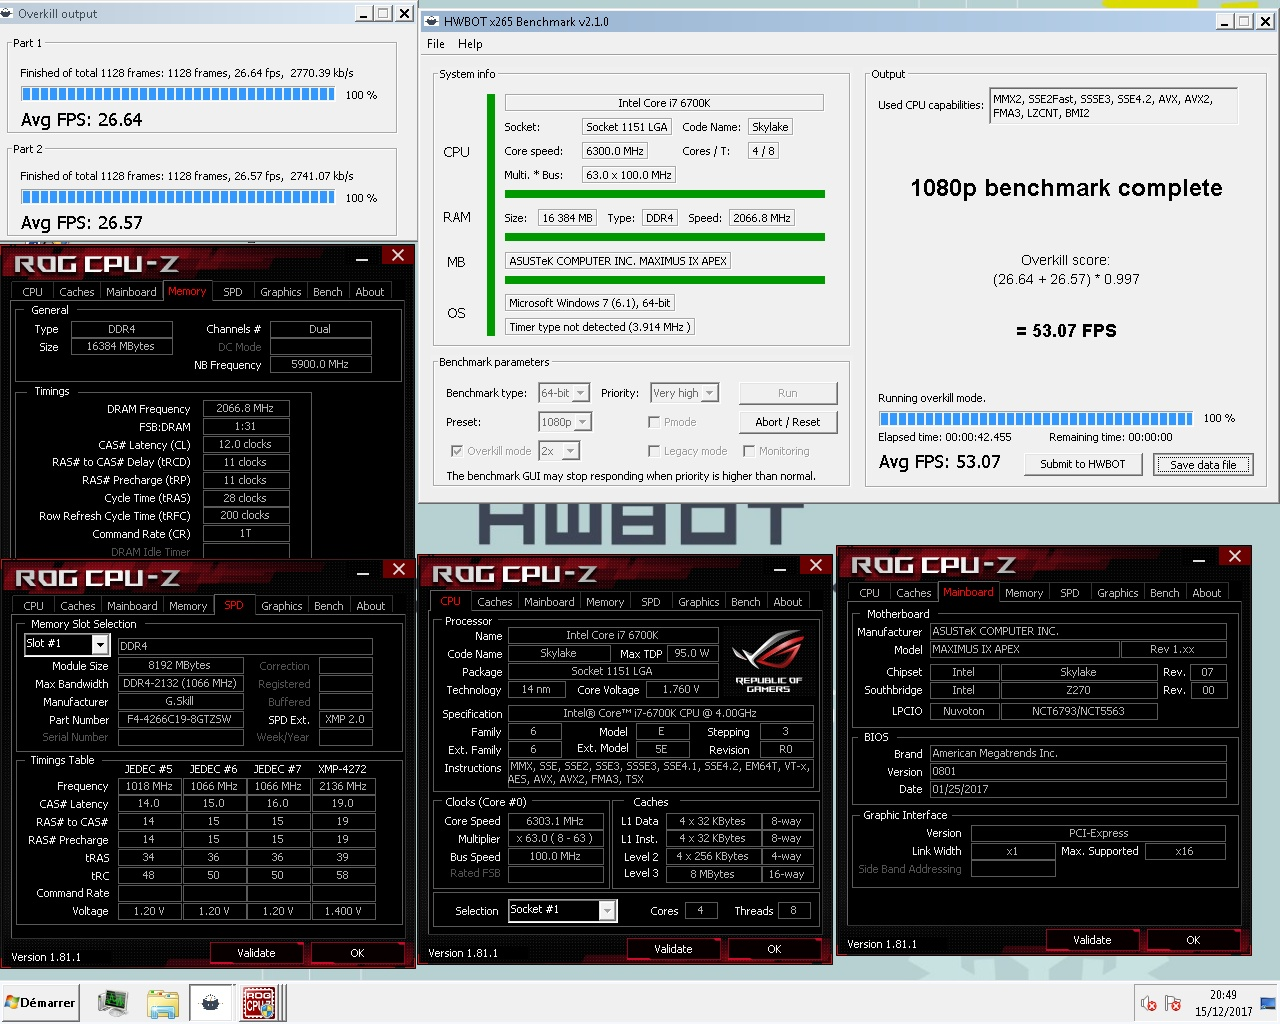 Ziken`s HWBOT x265 Benchmark - 1080p score: 53 07 fps with a